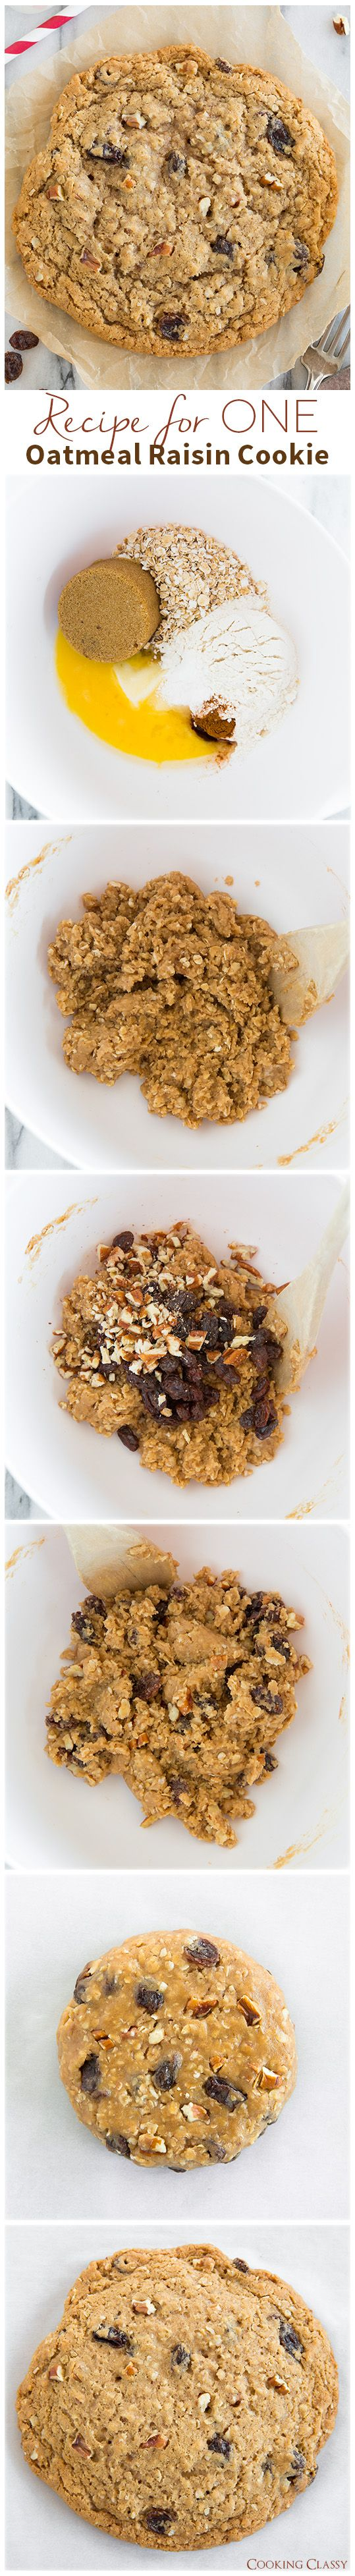 Recipe for One Oatmeal Raisin Cookie - no mixer required and so easy! This cookie tastes just like the big ones from the bakery! LOVED this recipe! If you don't like raisins swap them out for chocolate chips...